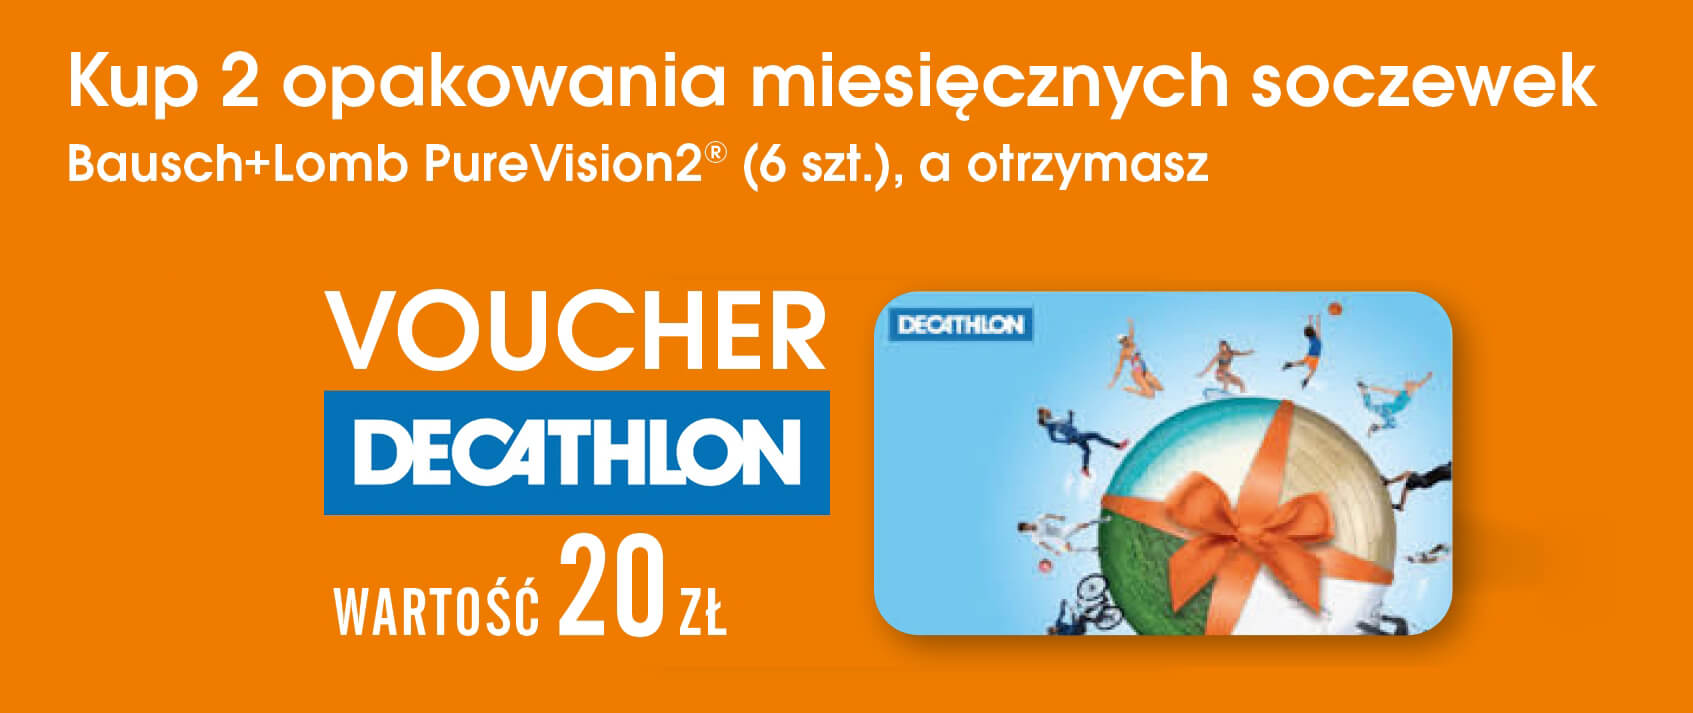 PureVision 2 + voucher Decathlon